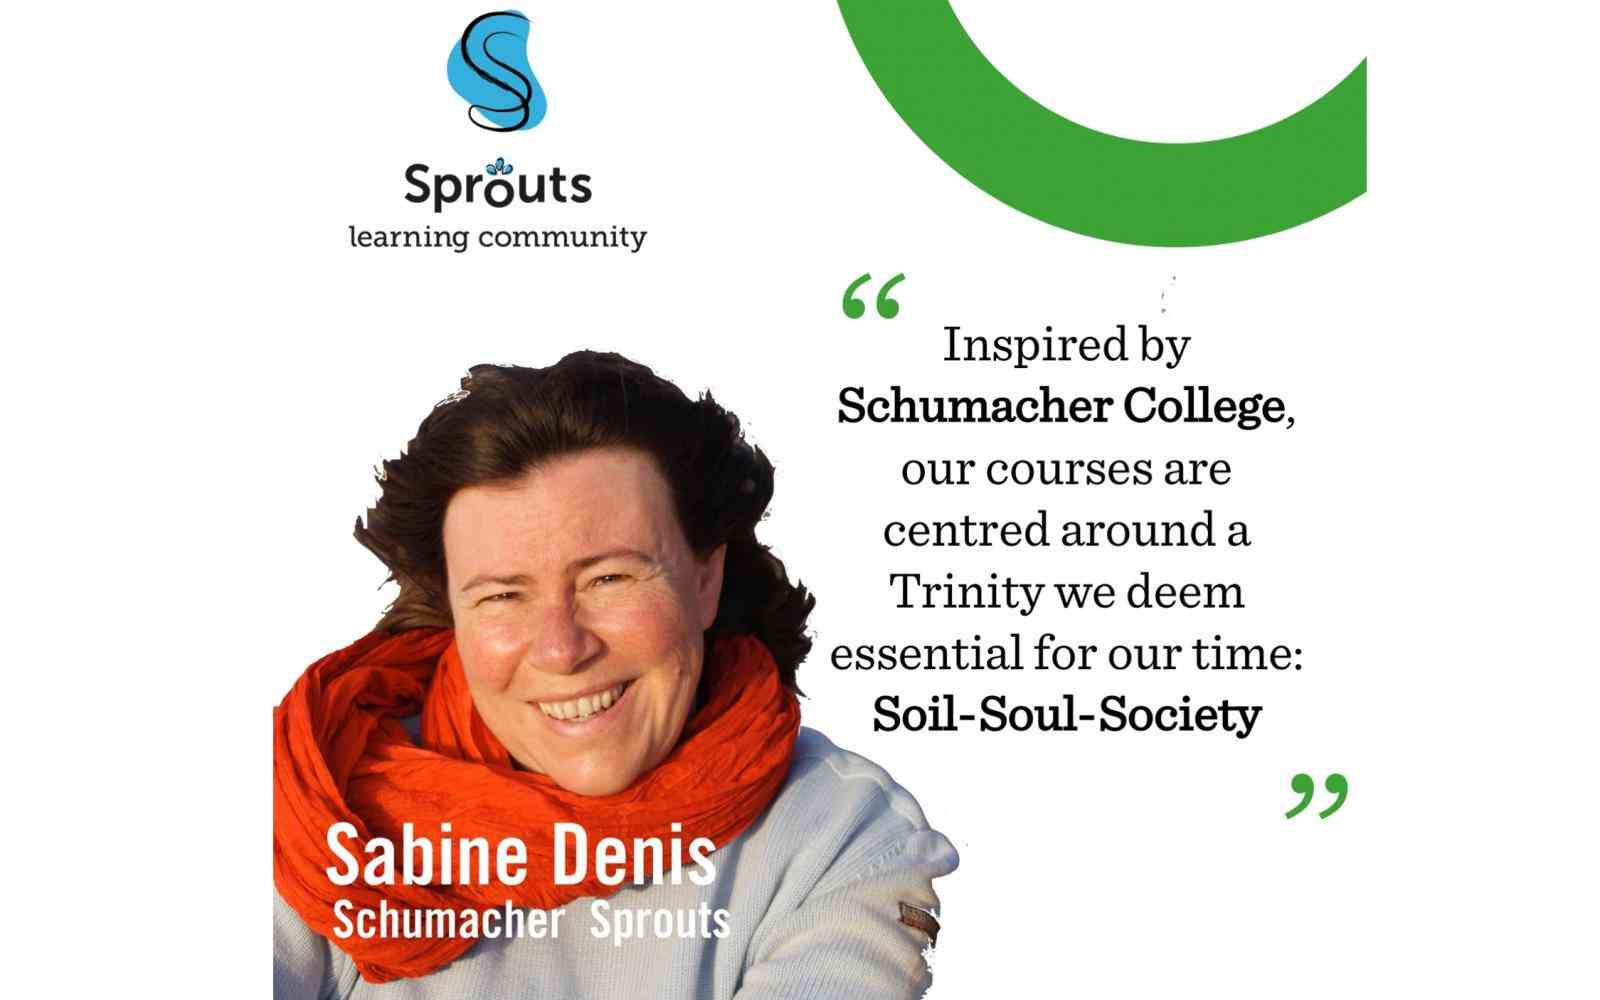 Sabine Denis description